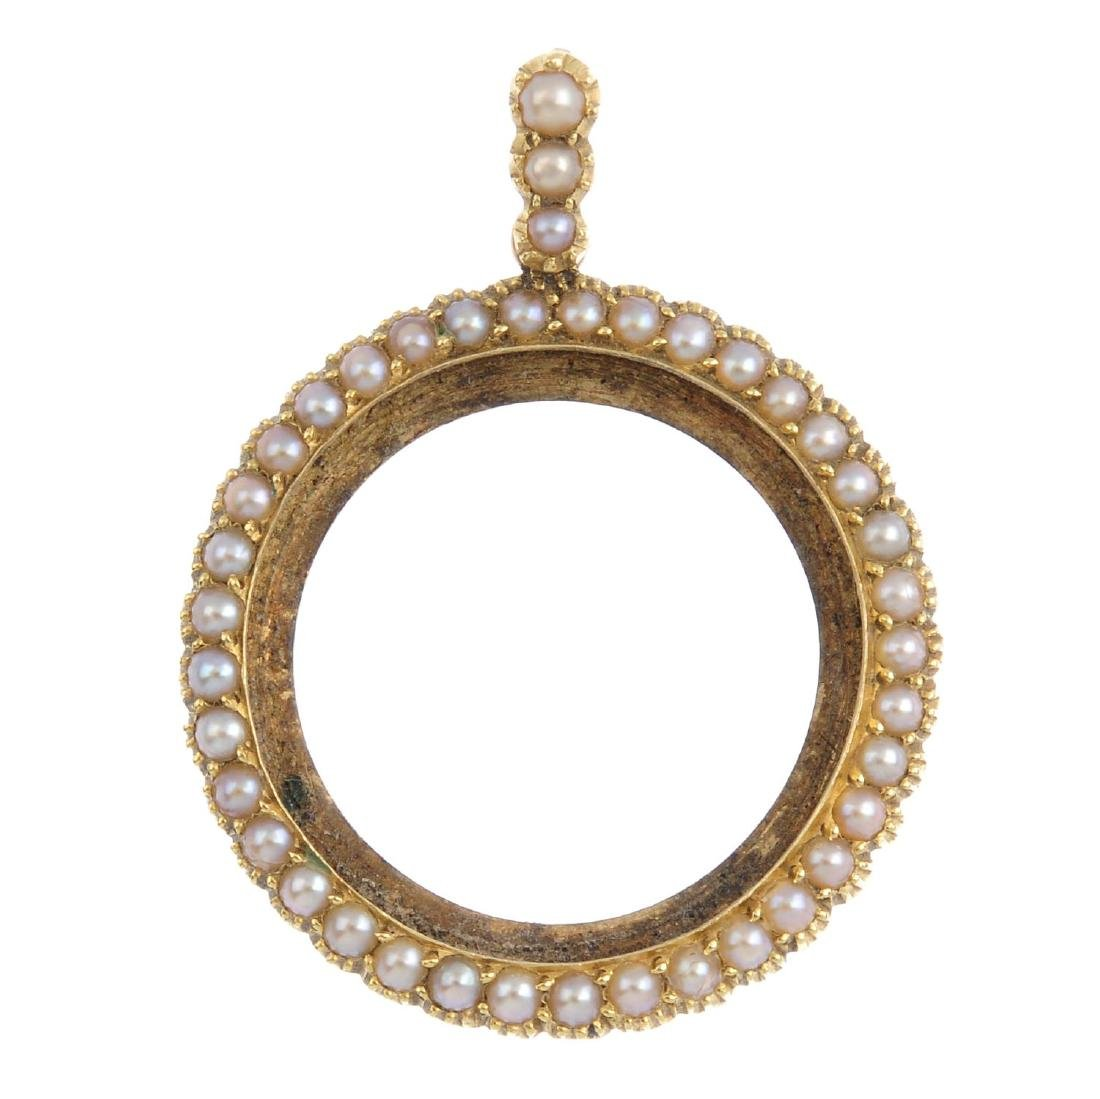 An early 20th century 15ct gold split pearl locket